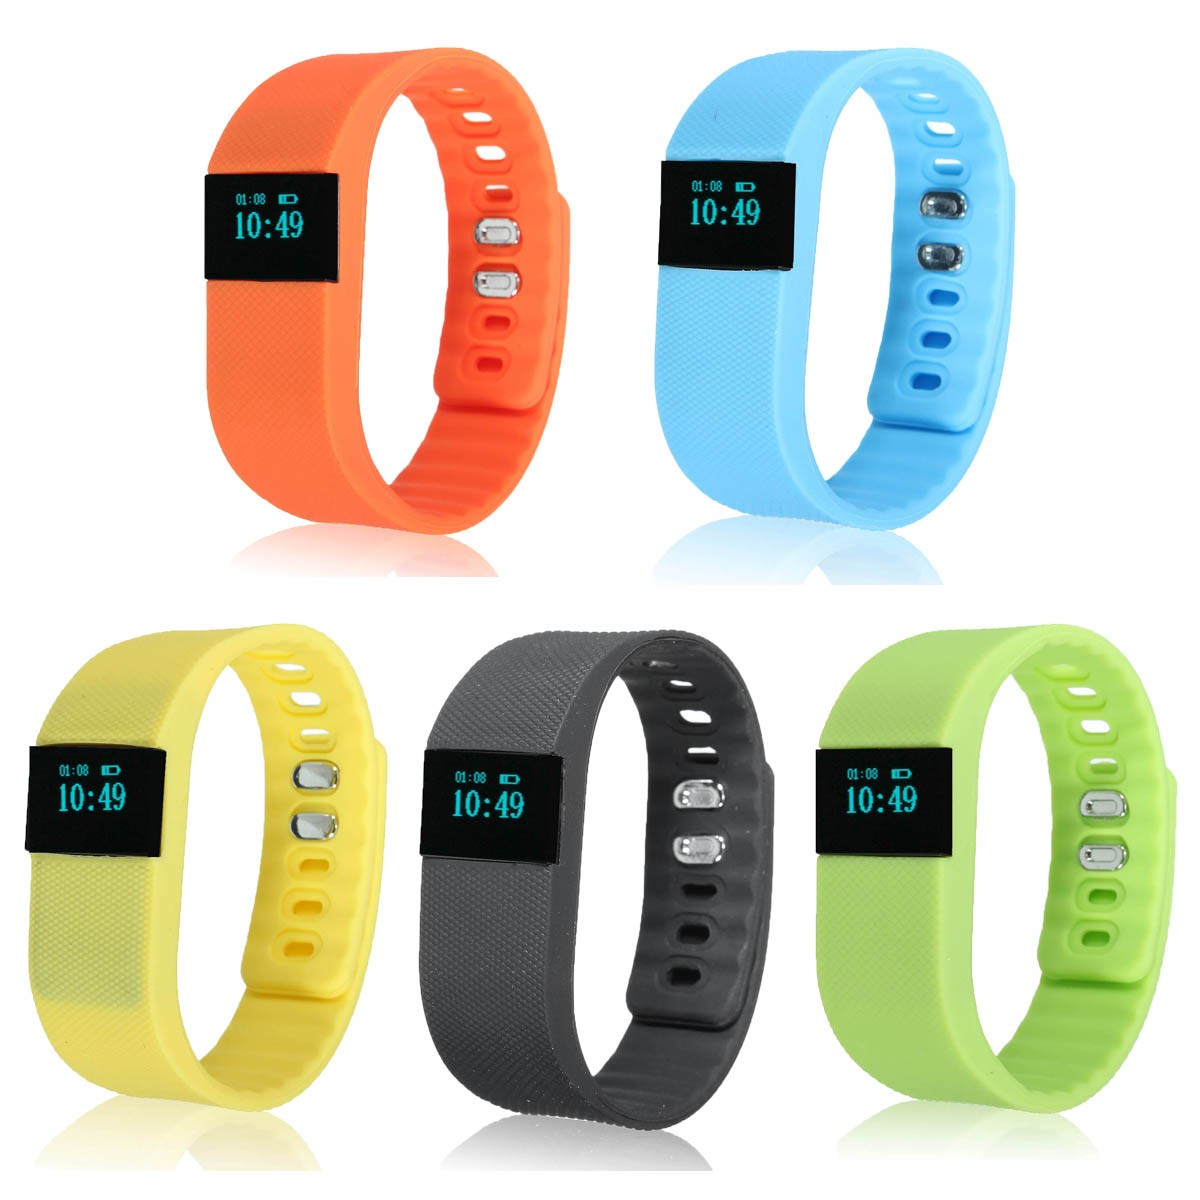 TW64 USB Bluetooth Pedometer Smart Wrist Watch Bracelet Waterproof for Android IOS